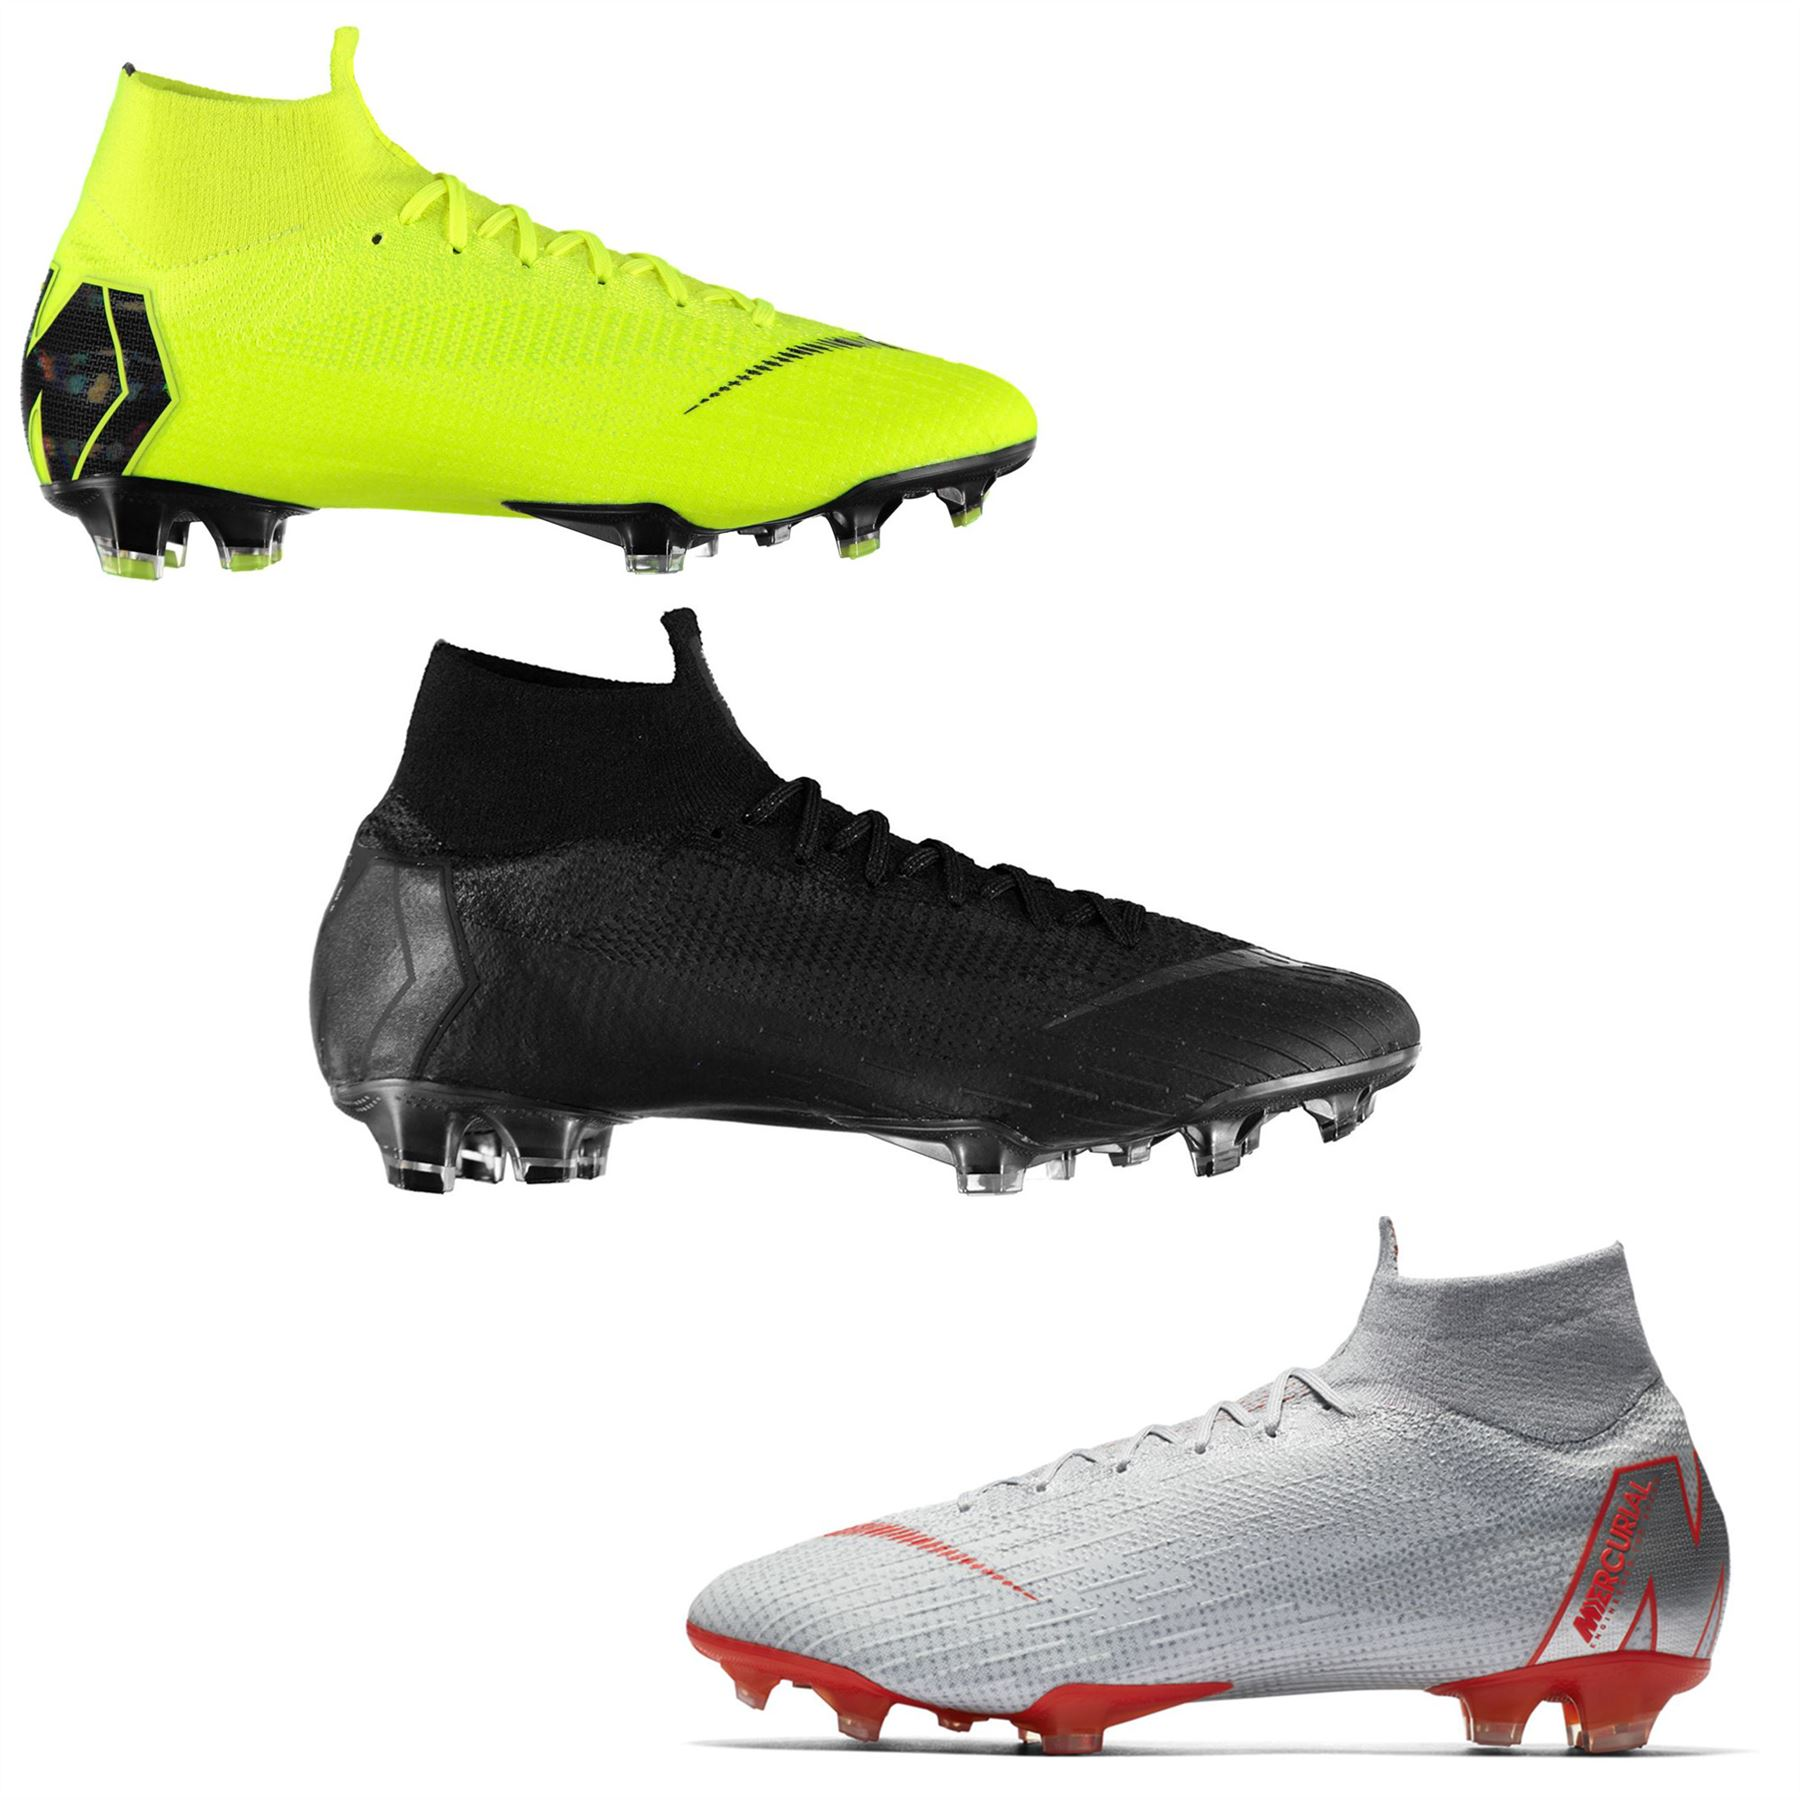 608ad348a9a ... Nike Mercurial Superfly Elite DF Firm Ground Football Boots Mens Soccer  Cleats ...